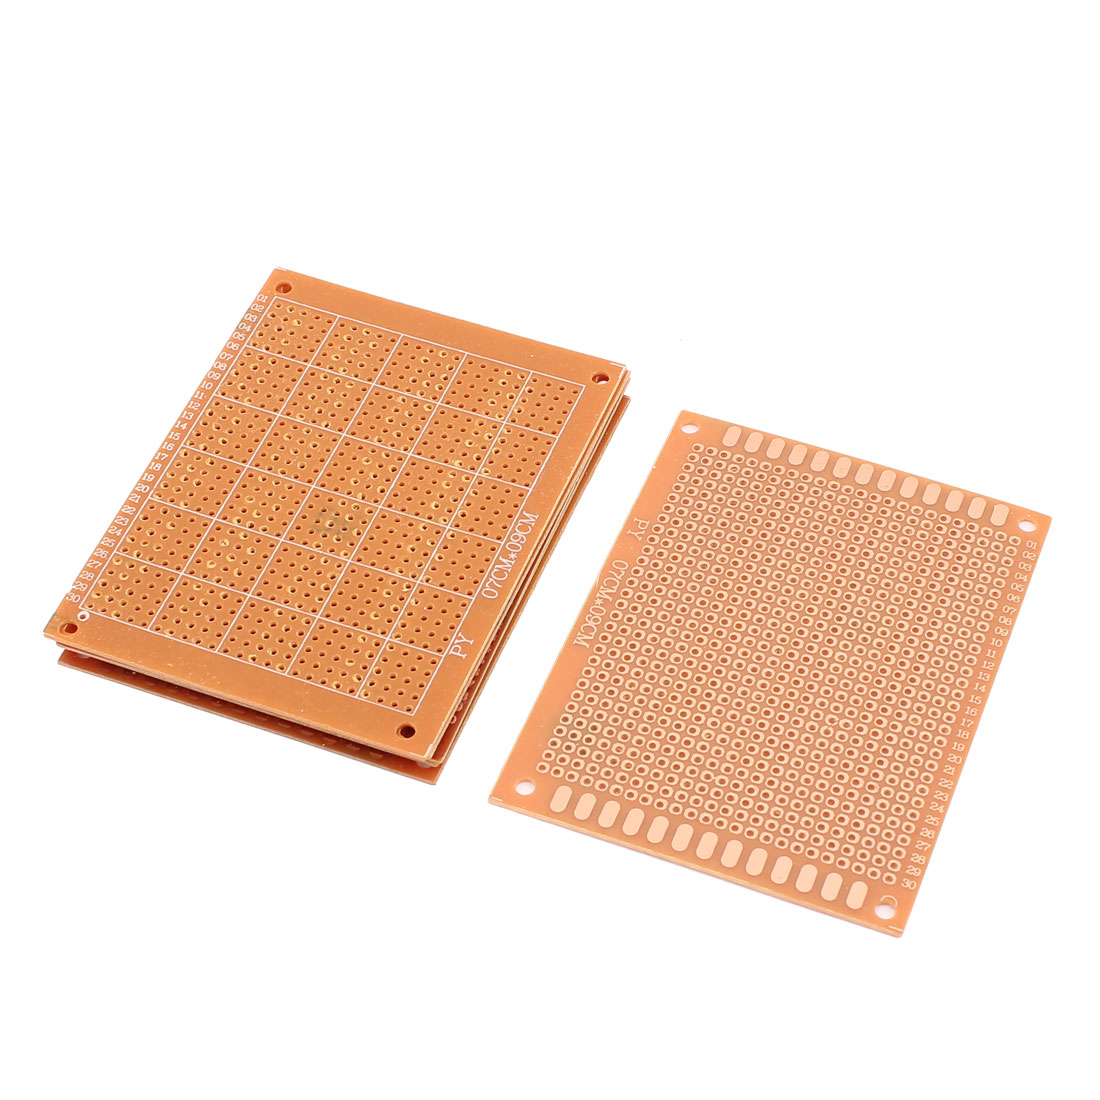 6pcs 9 x 7cm Solder Finished Prototype PCB for DIY Circuit Board Breadboard